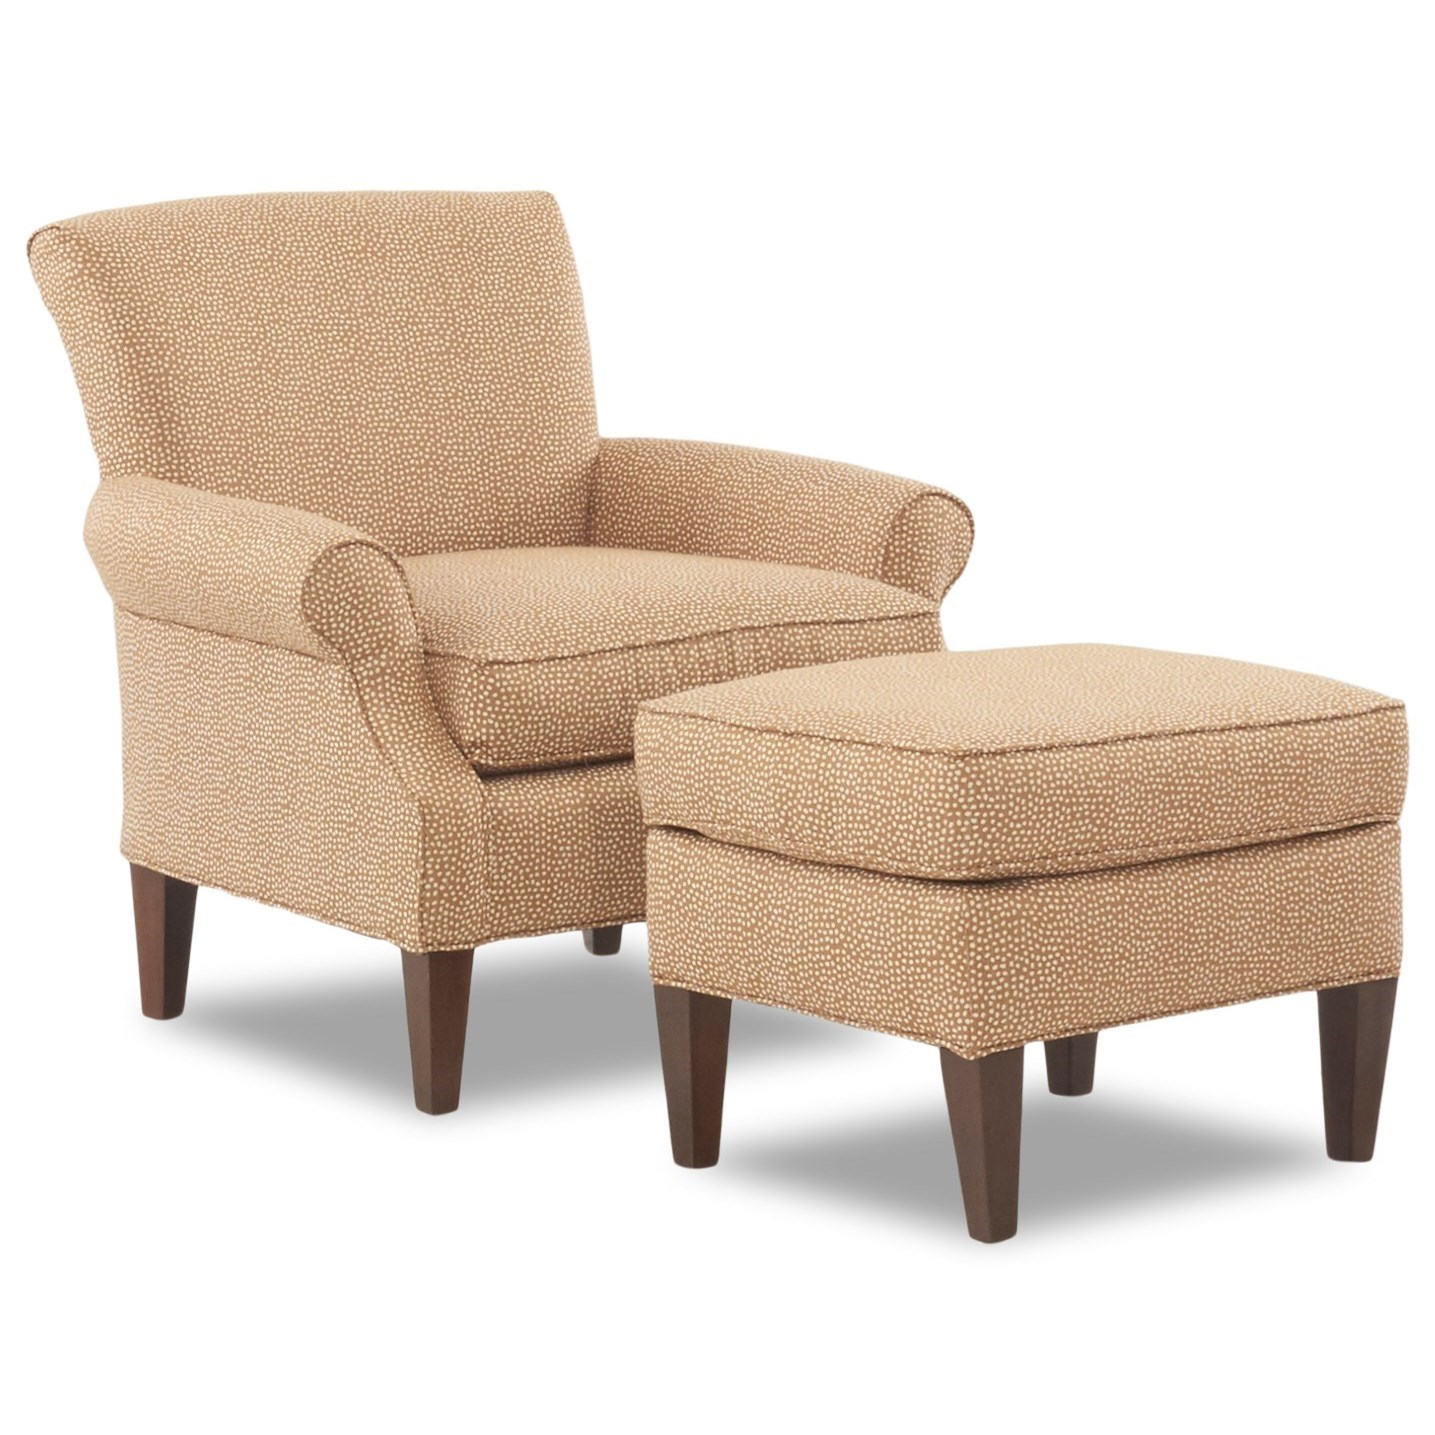 Klaussner Chairs And Accents Chair Ottoman Set Suburban